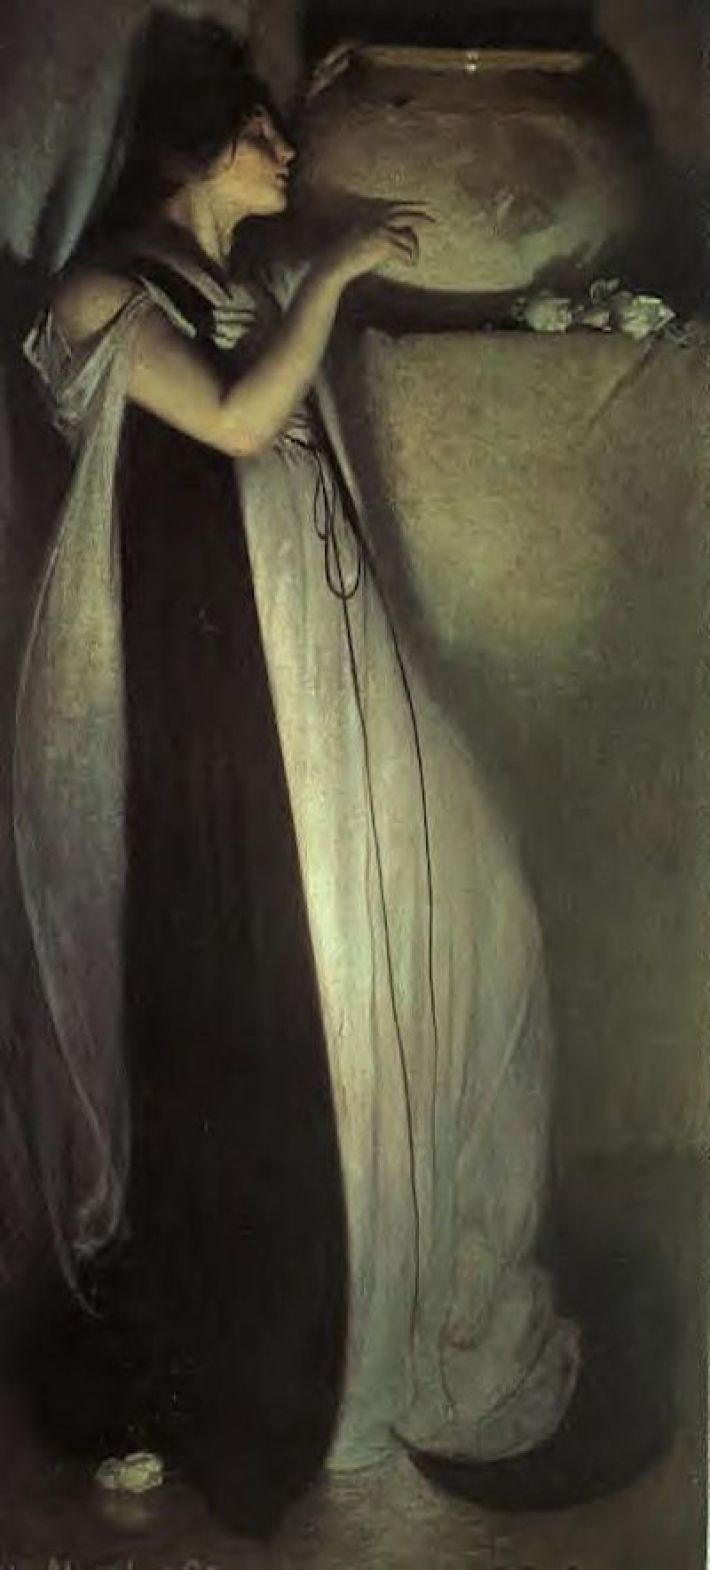 John White Alexander, Isabella and the Pot of Basil, 1897, olieverf op doek, 192.1 x 91.8 cm, Museum of Fine Arts, Boston